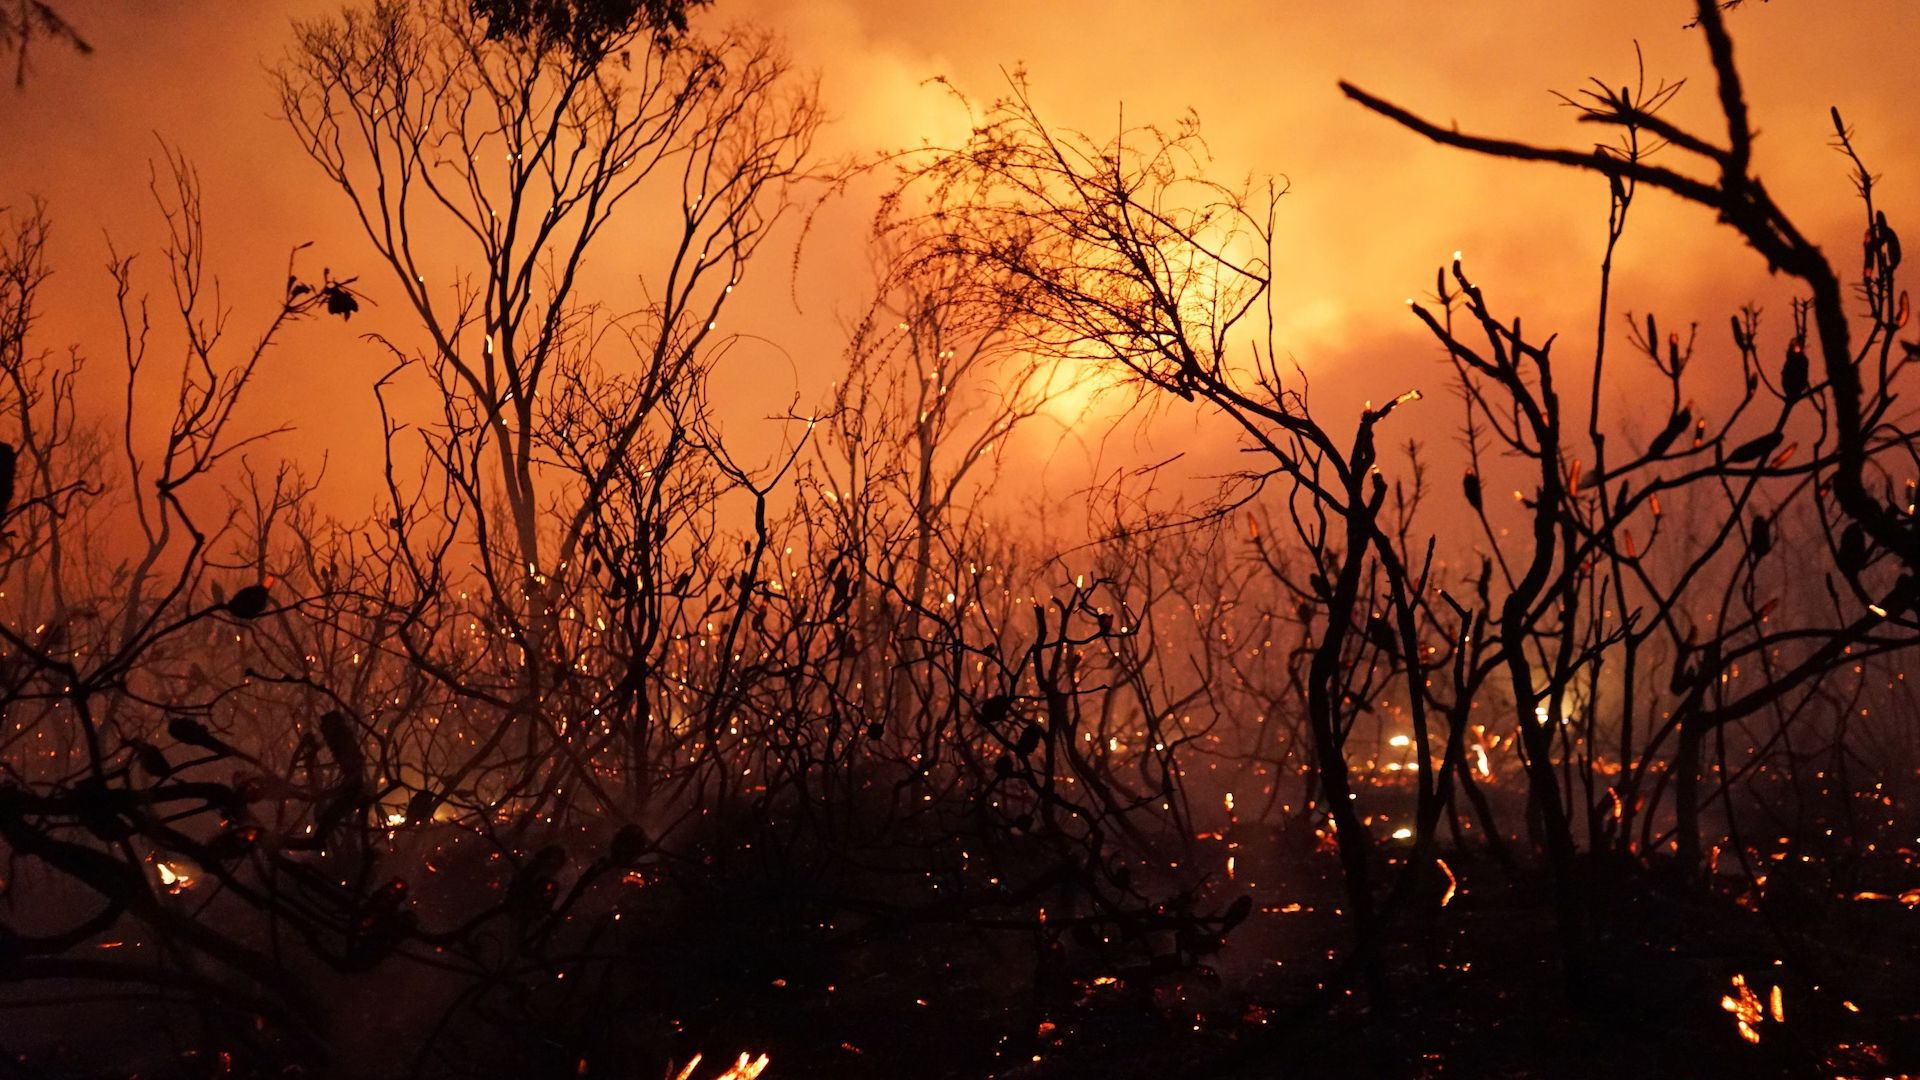 Bushfire during Australia's hottest summer on record.